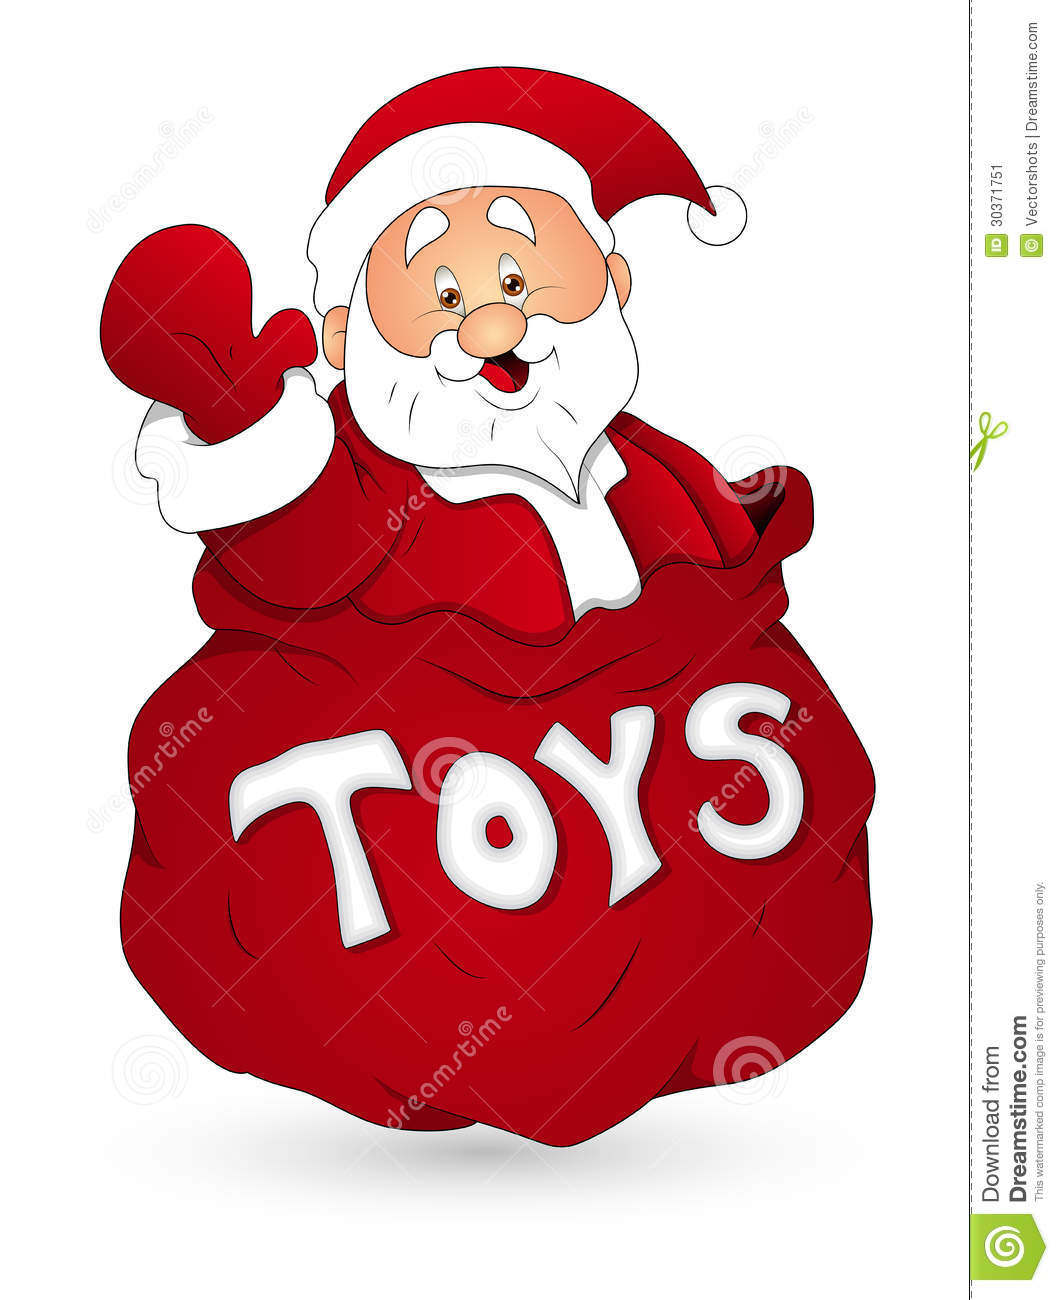 Cartoon Christmas Toys : Santa with toy bag christmas vector illustration stock